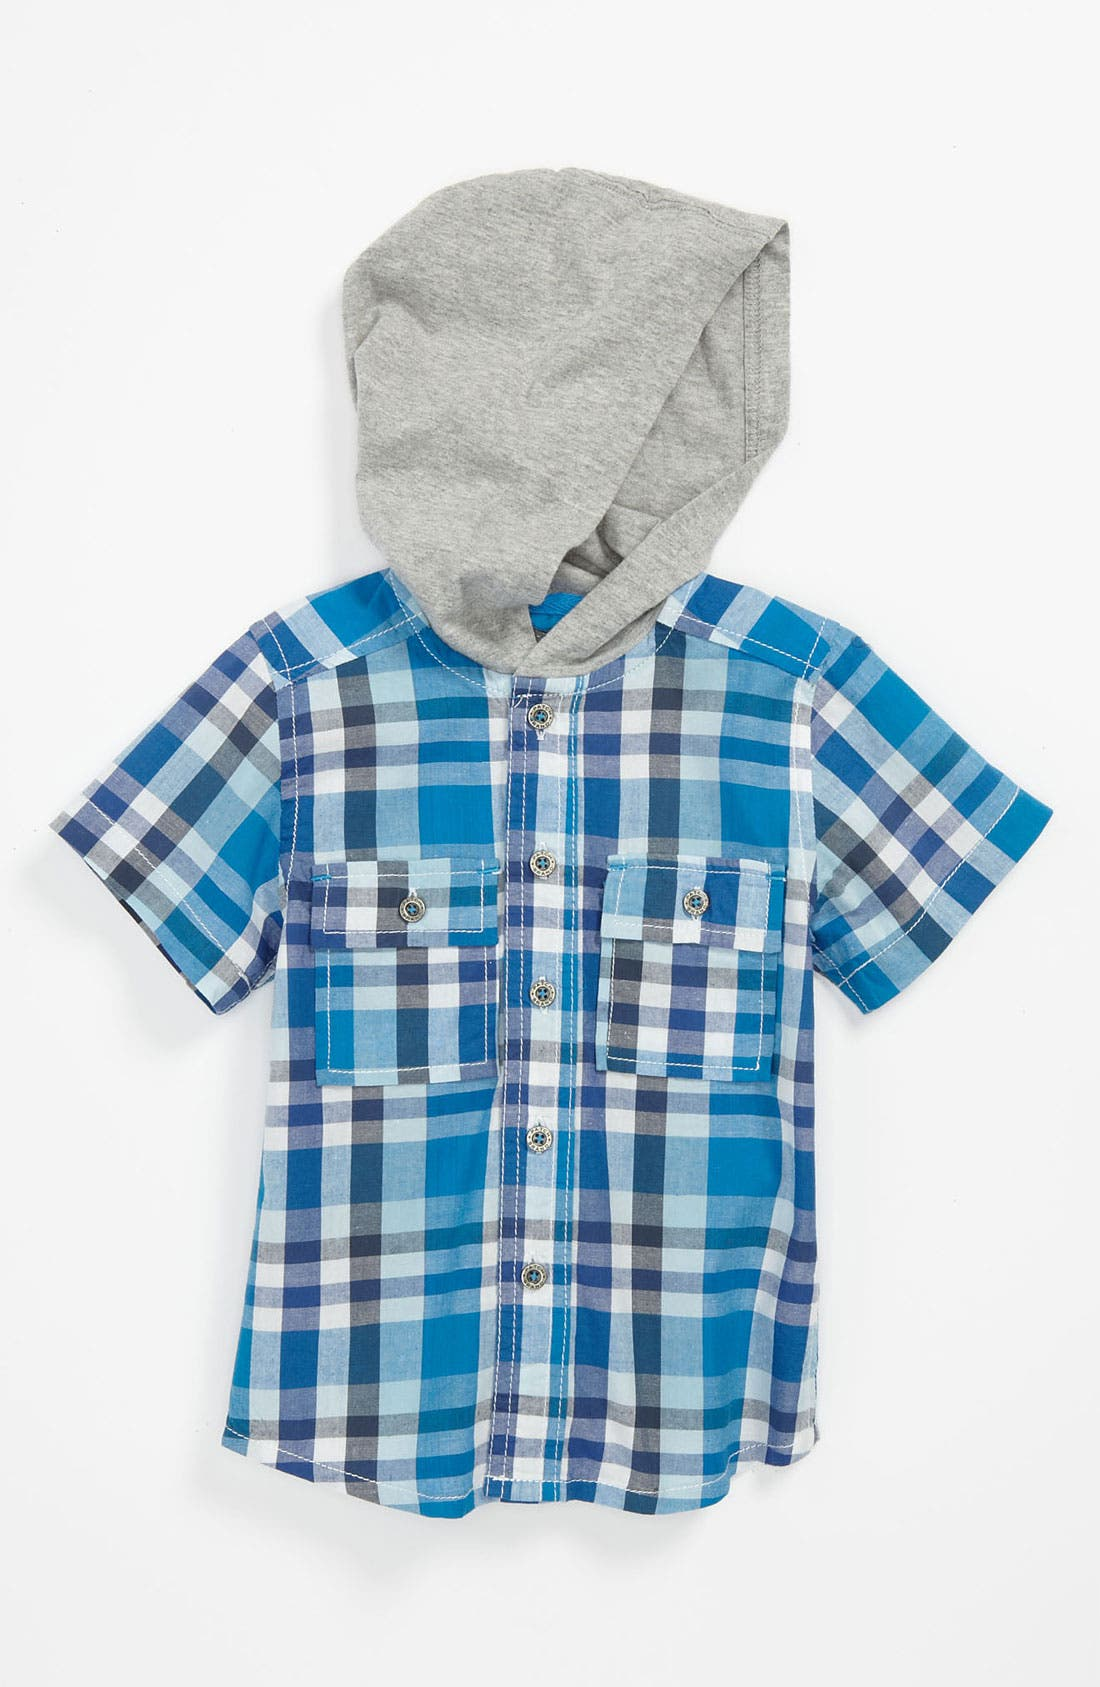 Alternate Image 1 Selected - Pumpkin Patch Hooded Shirt (Baby)